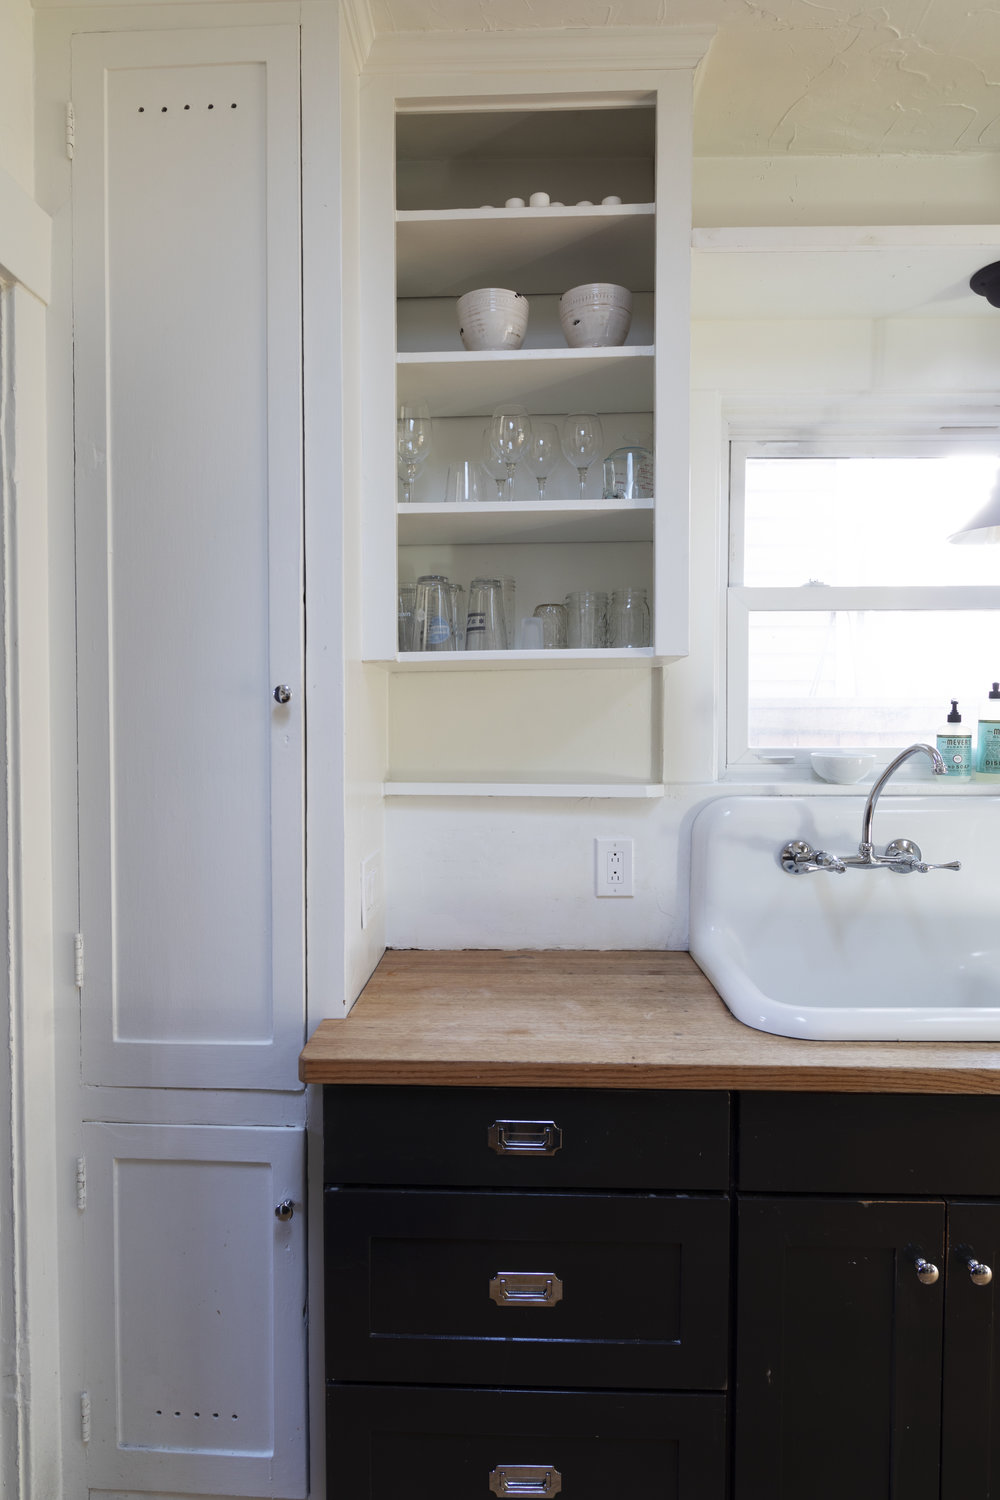 The Grit and Polish - Dexter Kitchen Cabinets NO DOOR BEFORE.jpg